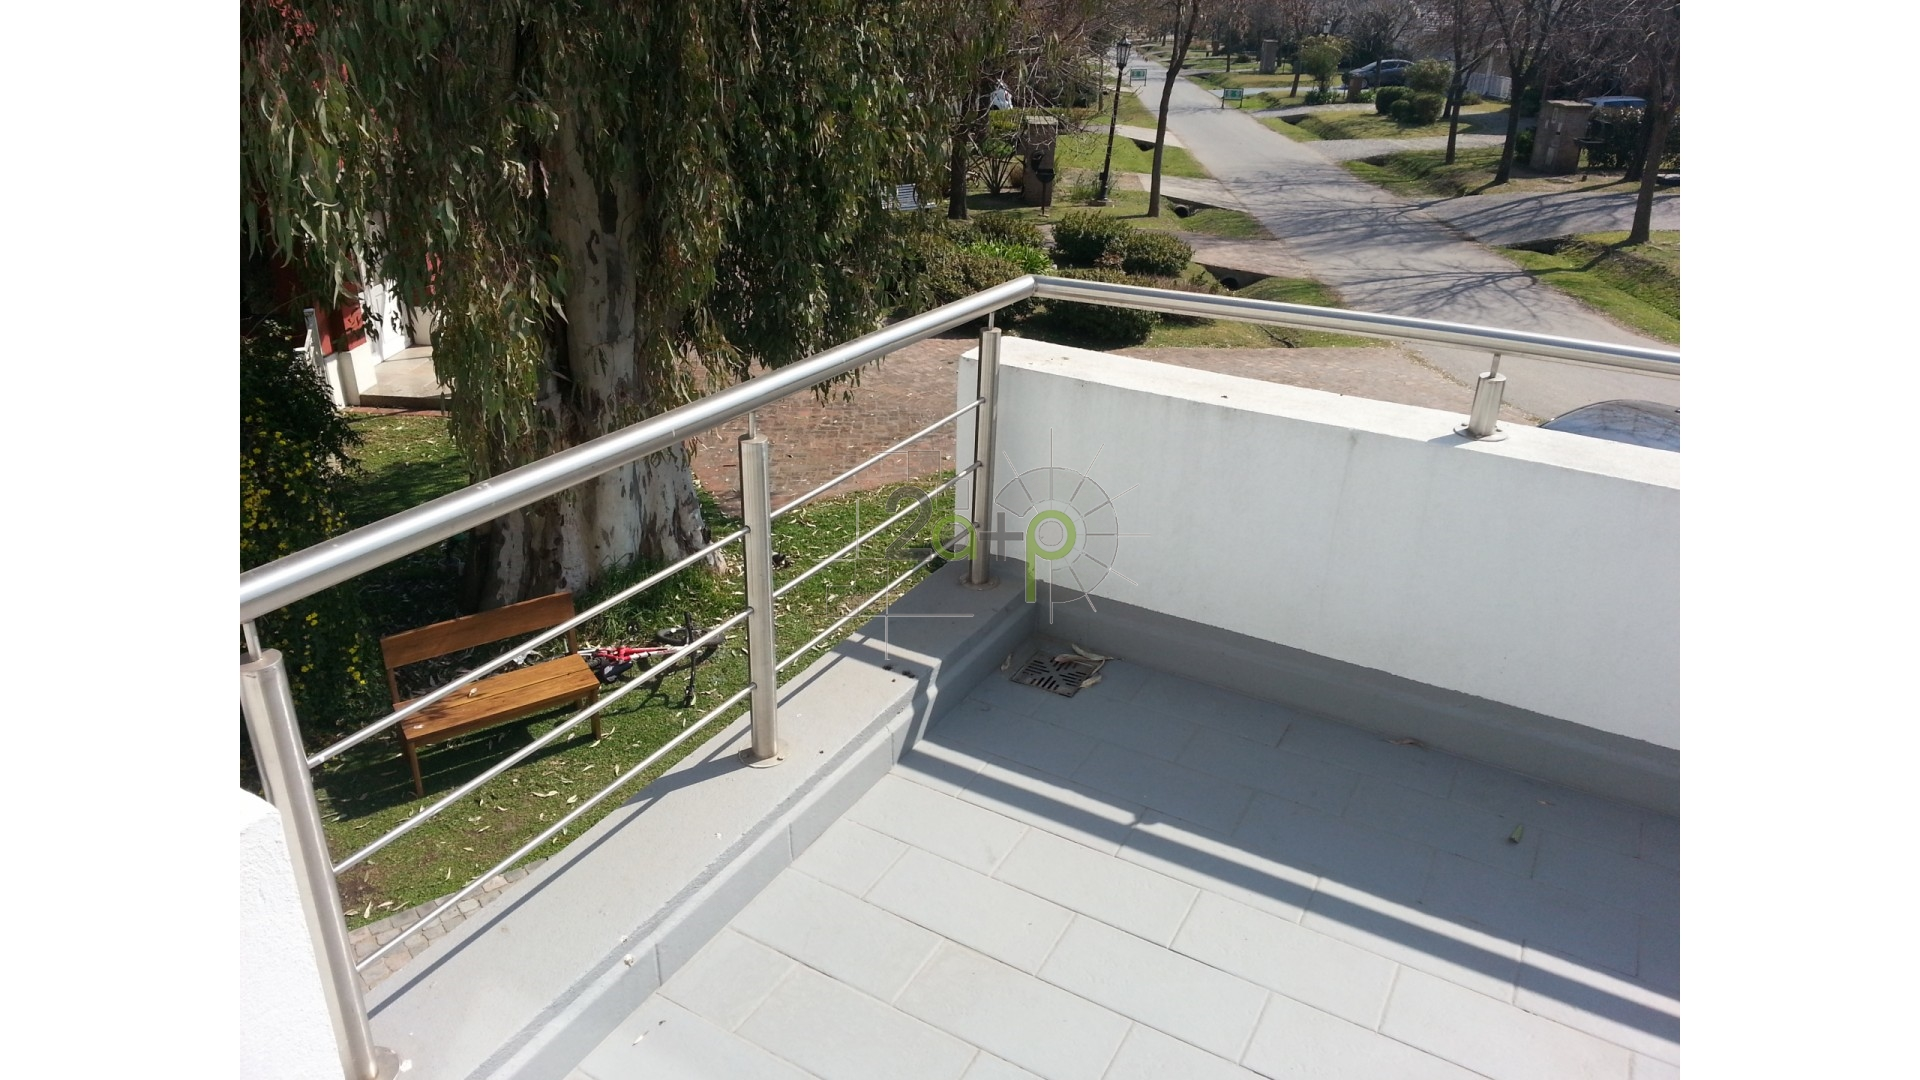 Obra TLS - Moreno, Bs.As.